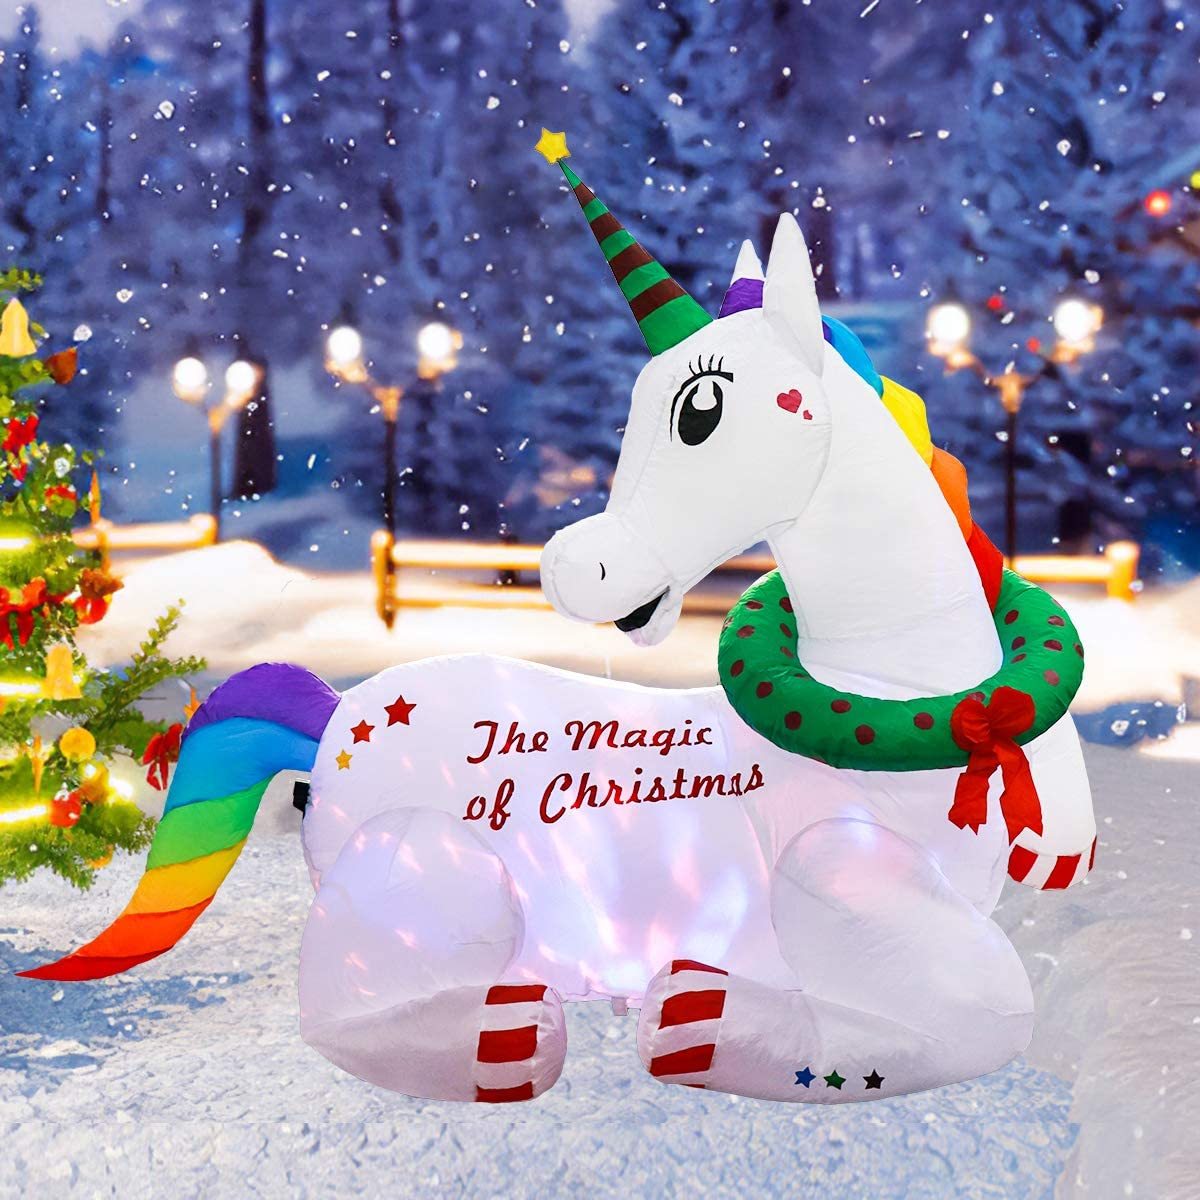 Meland Christmas Inflatable Magical Unicorn 6ft - Self Inflating Xmas Unicorn Decorations with 7 Color Rotating Lights for Indoor Outdoor Christmas Party Yard Garden